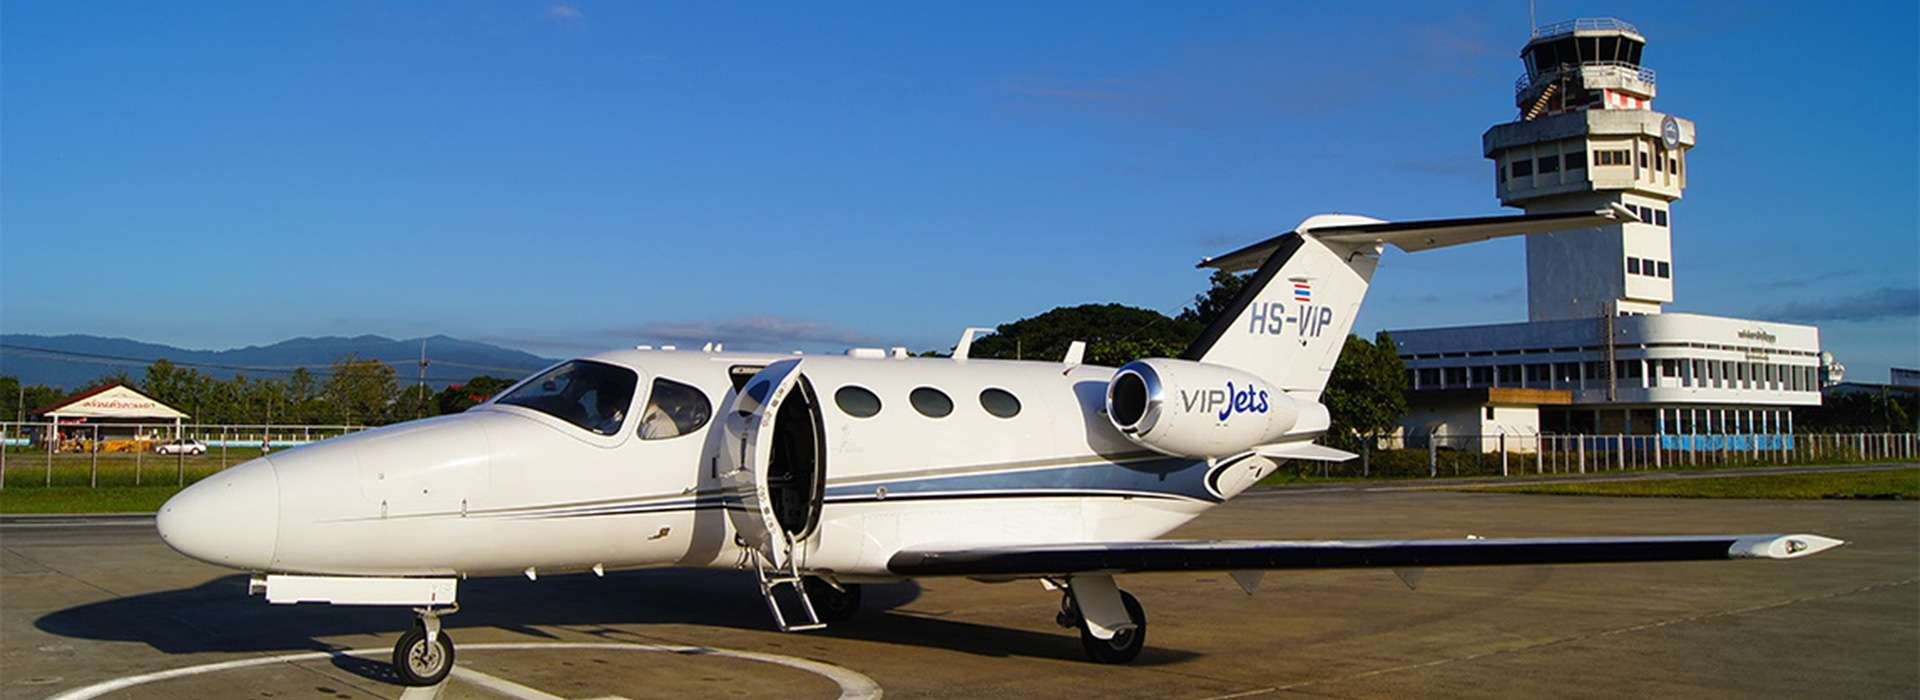 Cessna Citation Mustang 510 HS VIP Chiang Rai